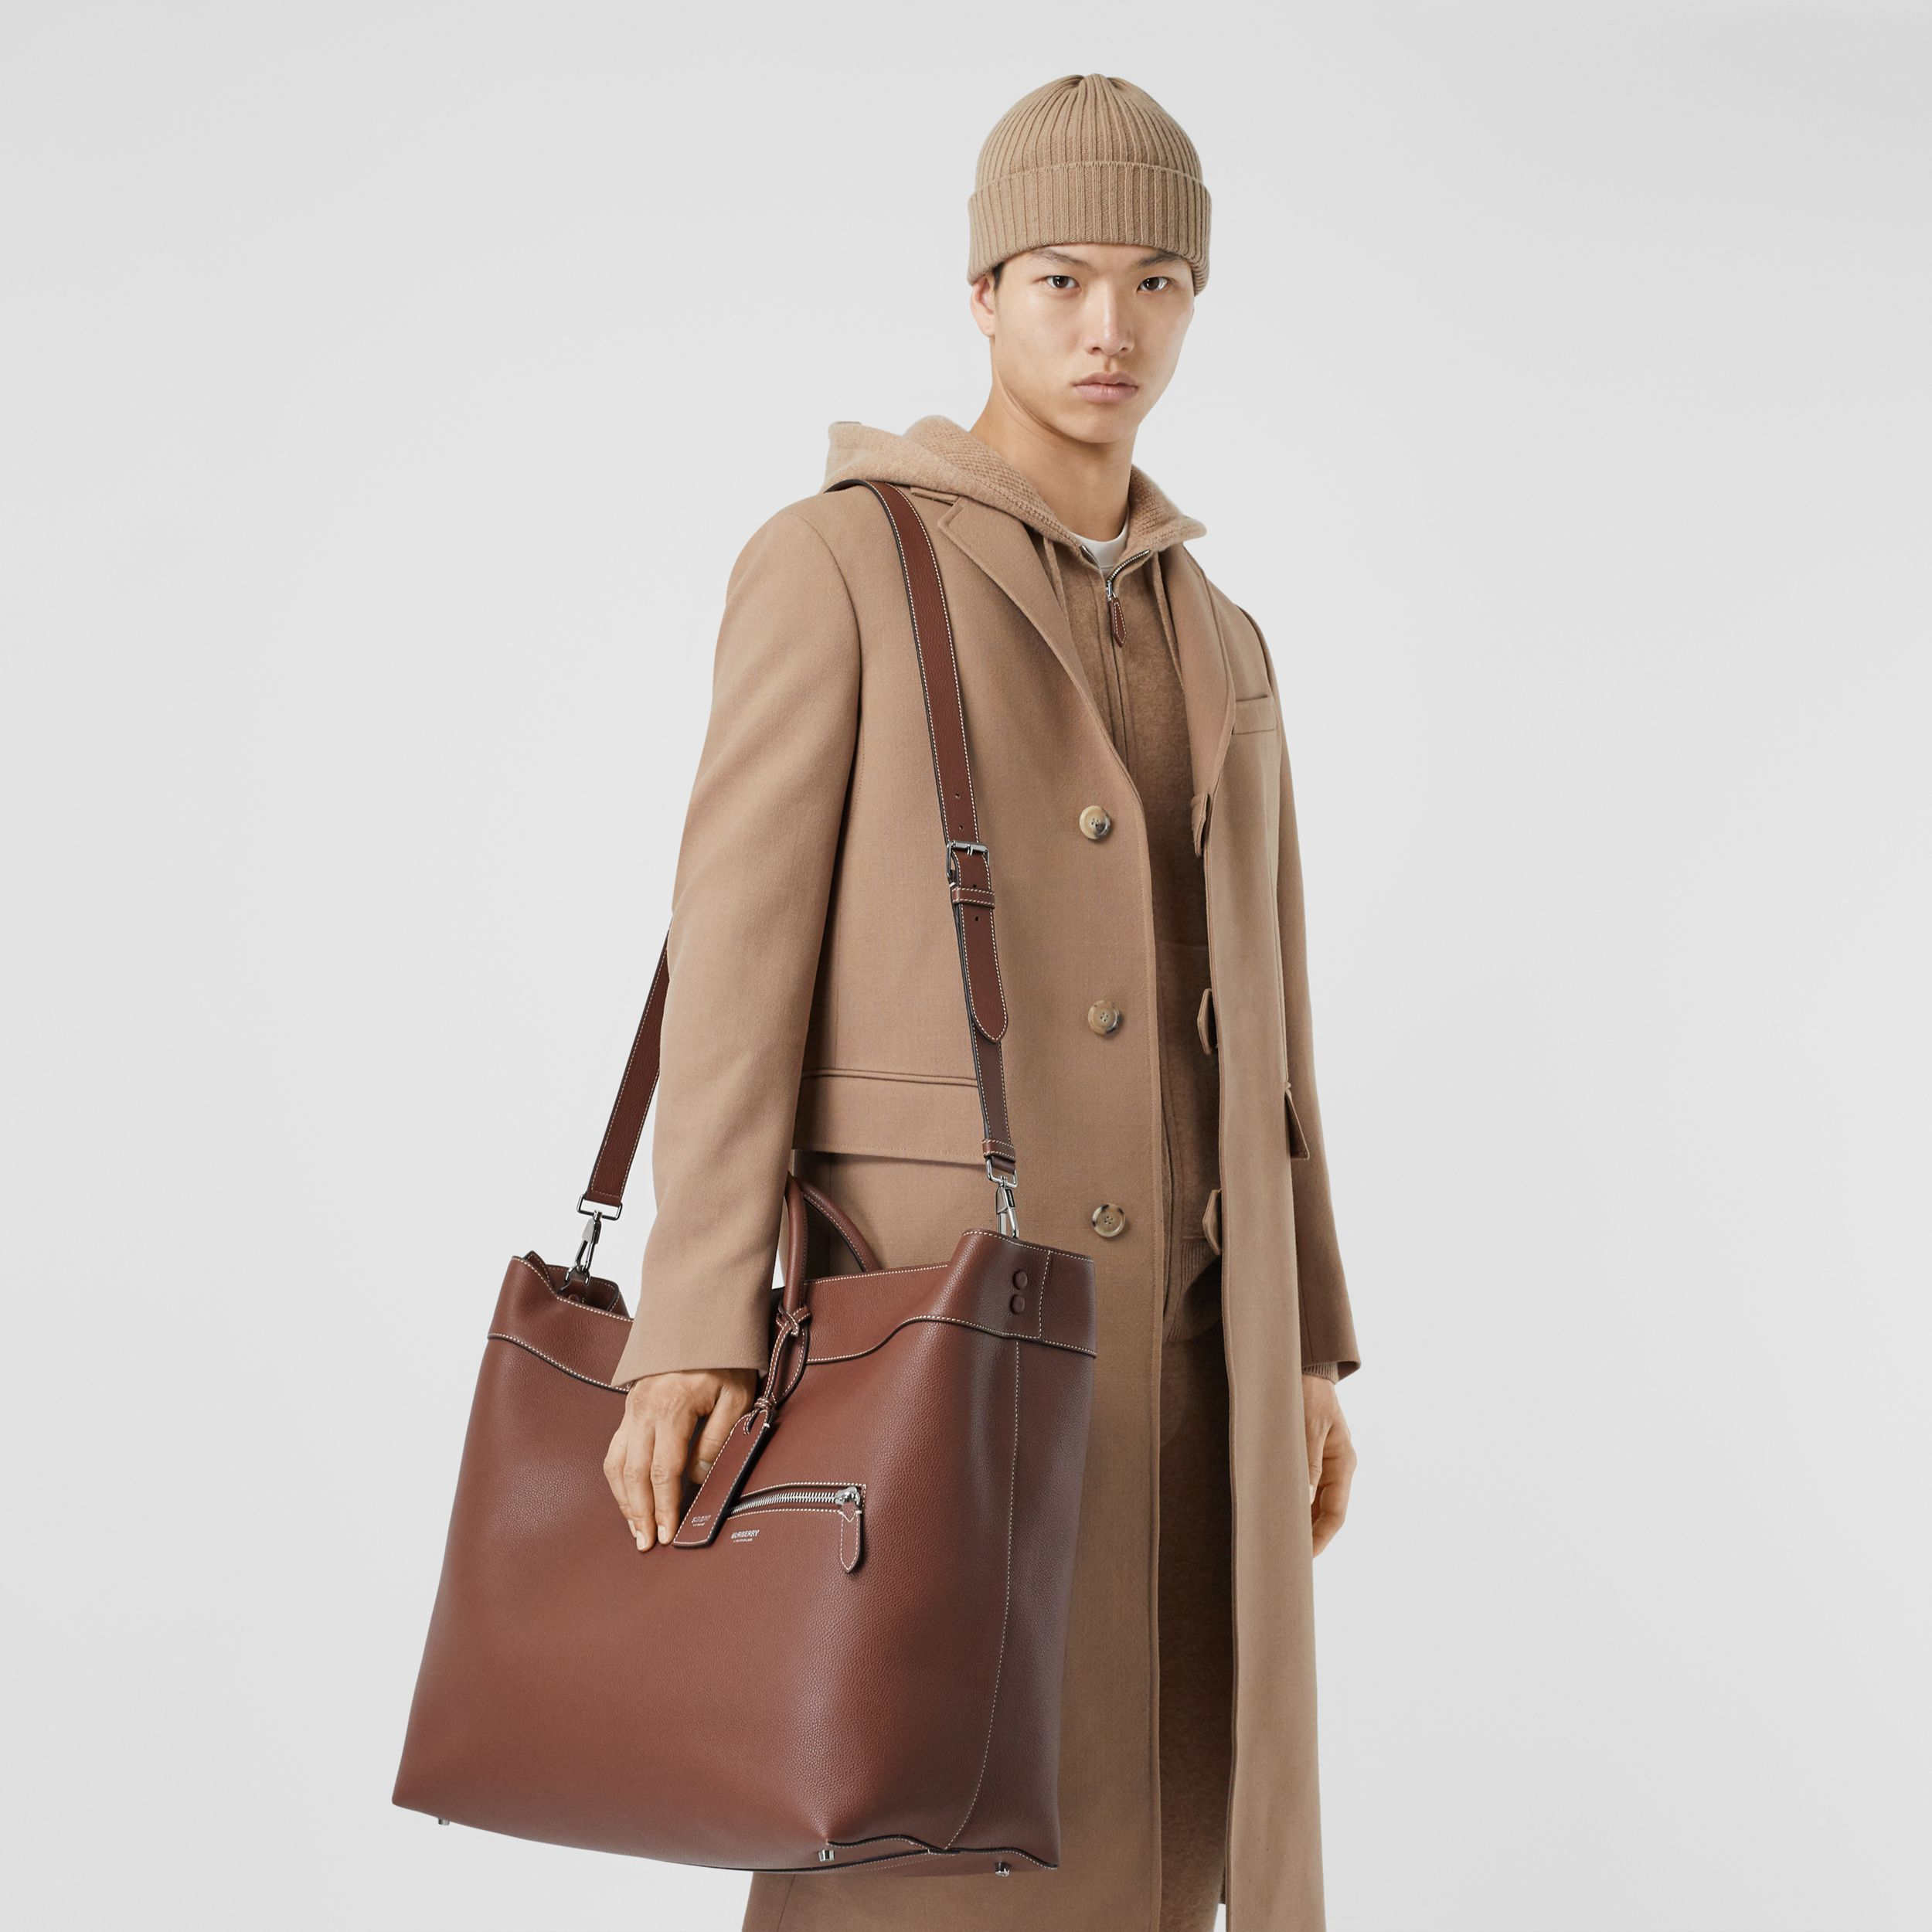 Grainy Leather Holdall in Tan - Men | Burberry - 3